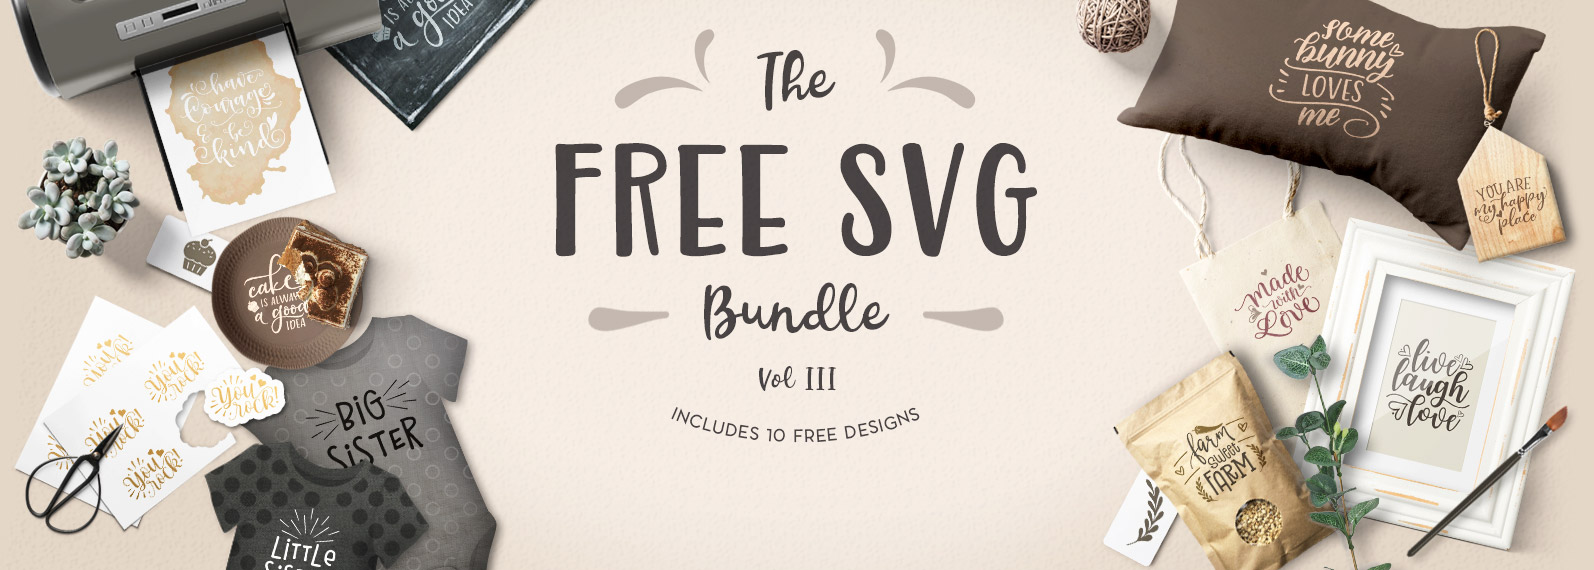 The Free SVG Bundle Volume III Cover